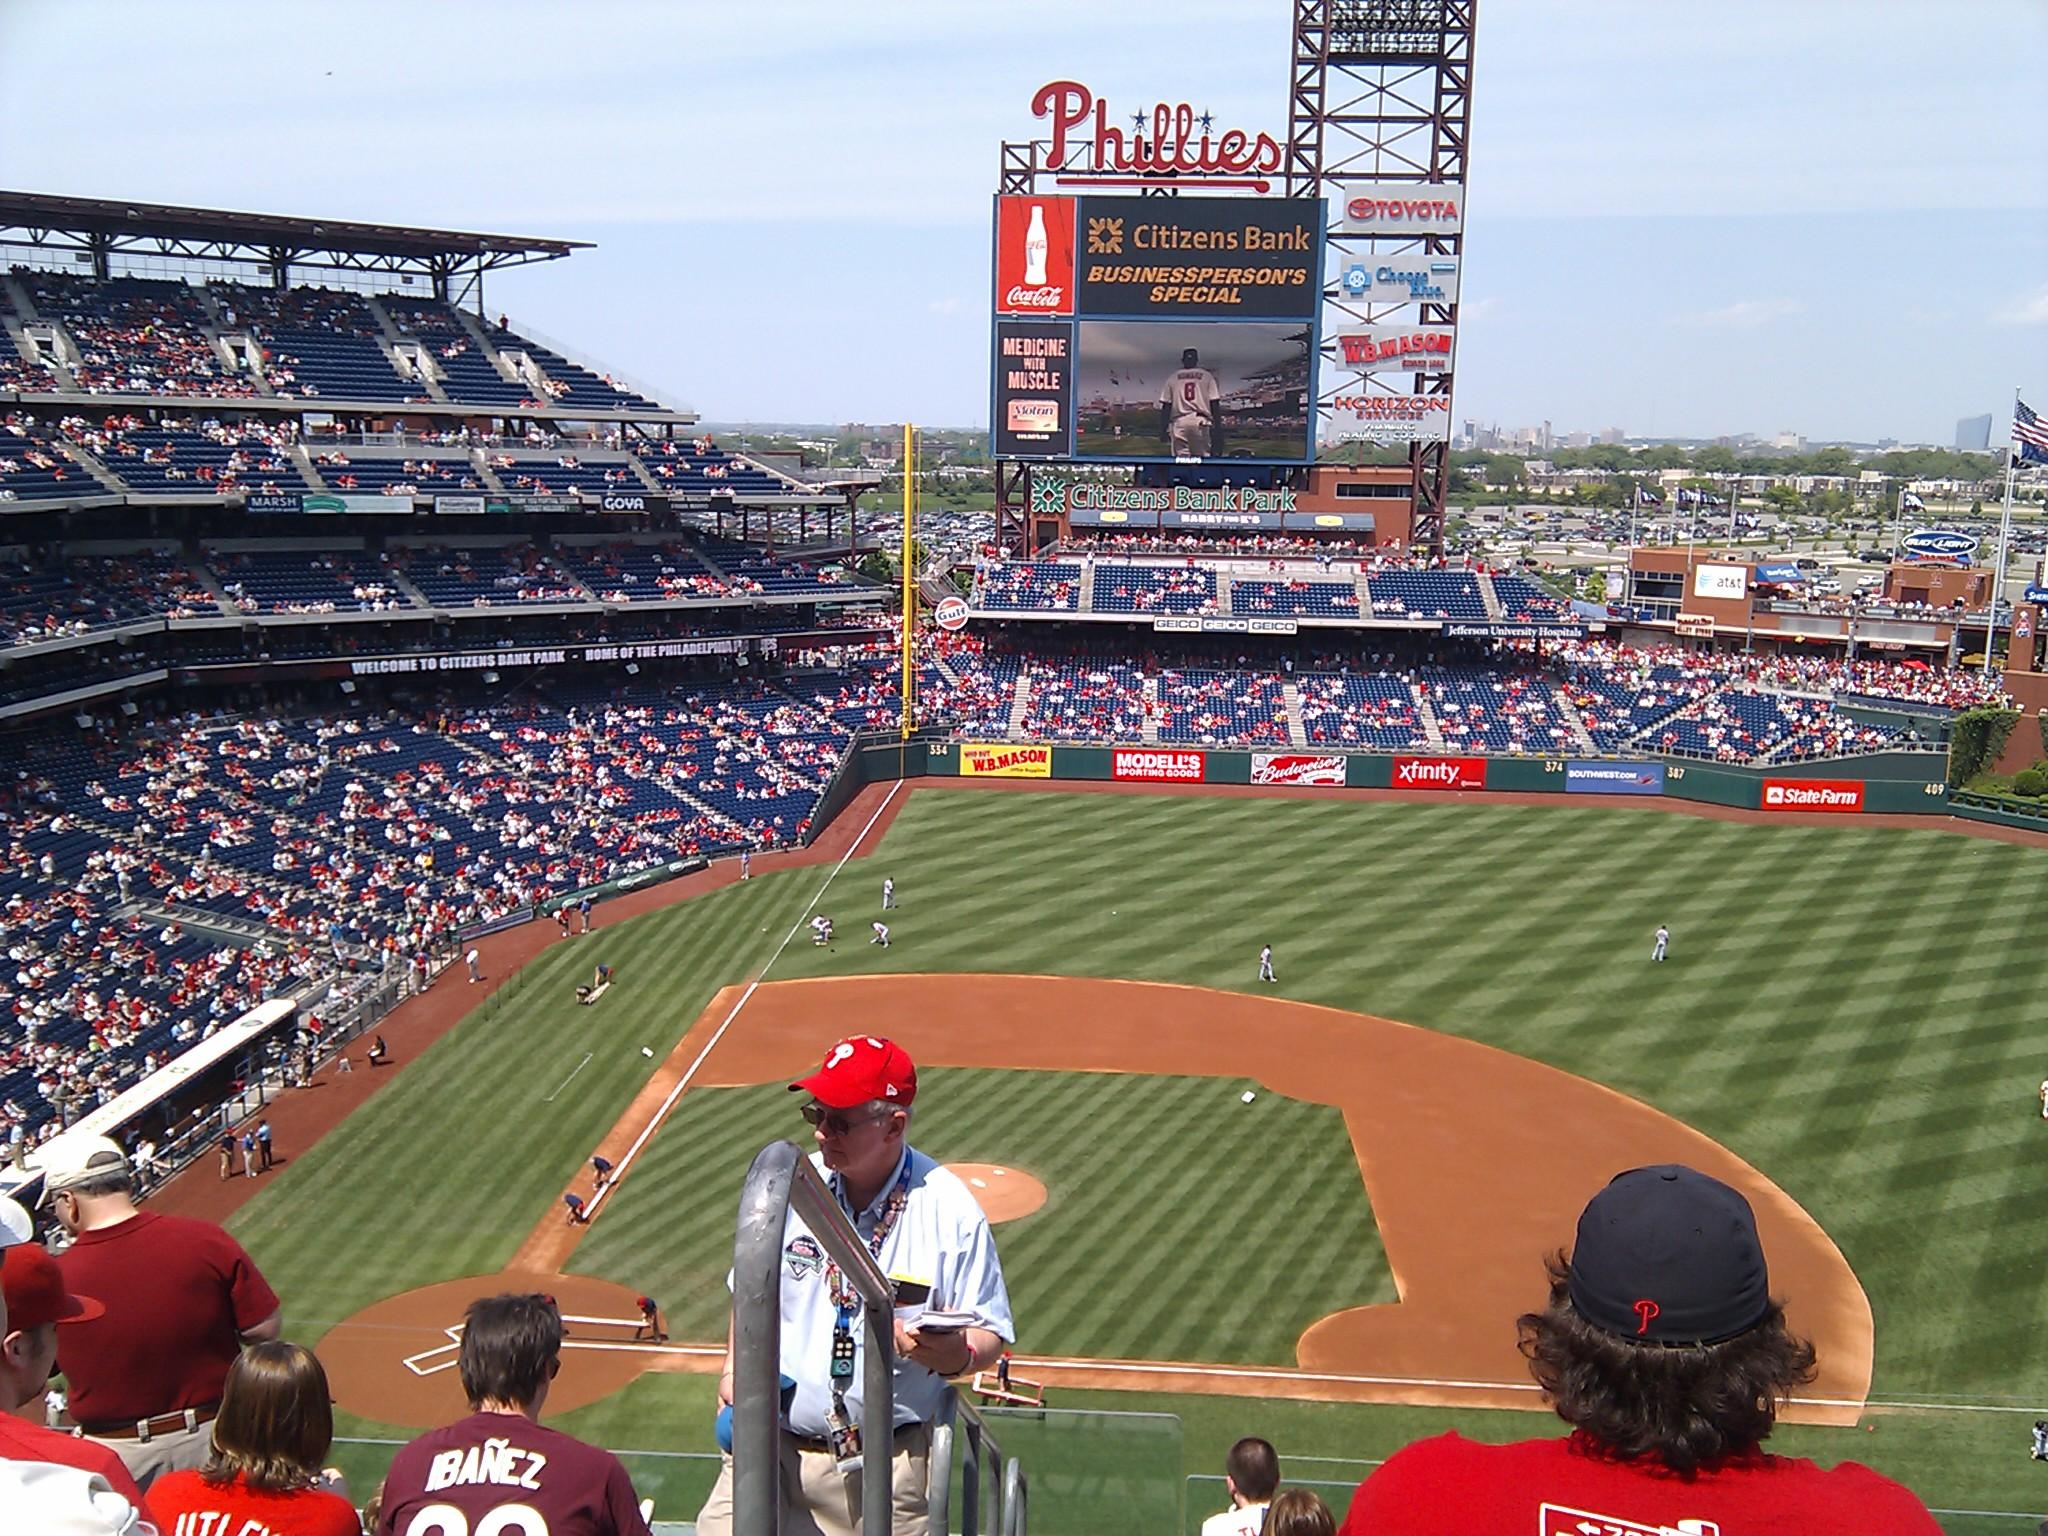 Citizens Bank Park Section 315 Row 8 Seat 24